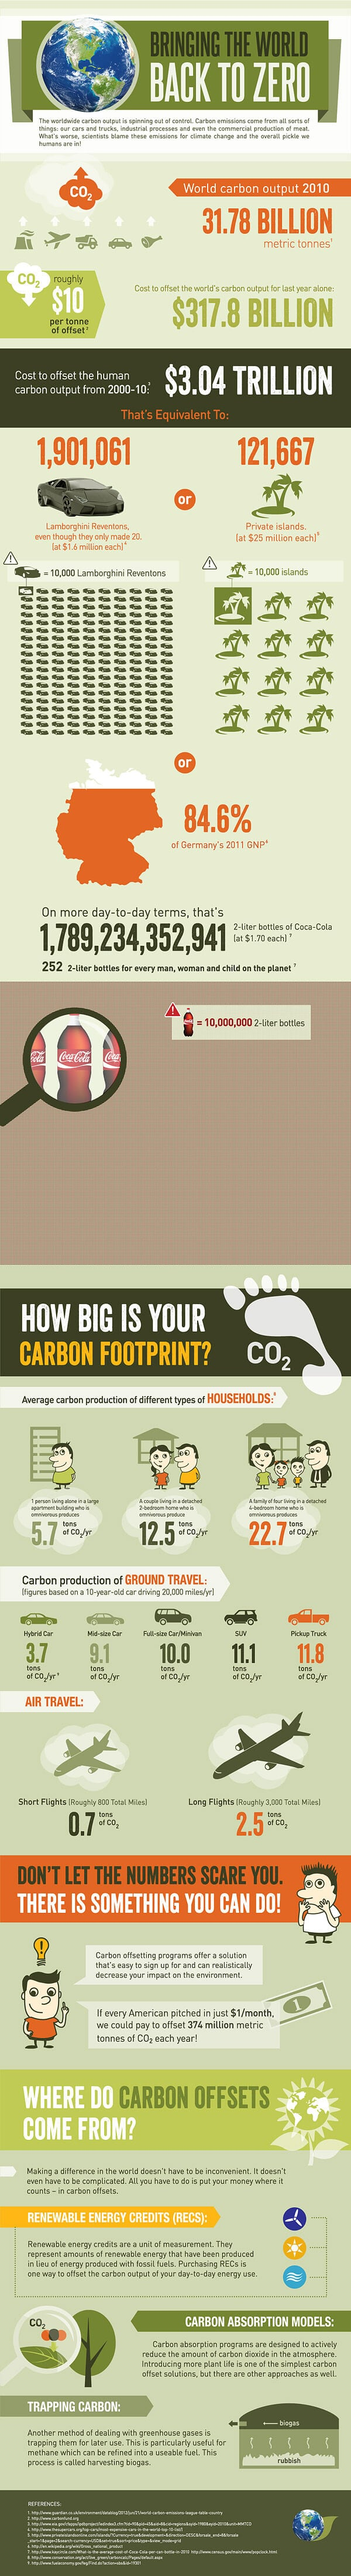 Offsetting global carbon footprint - infographic